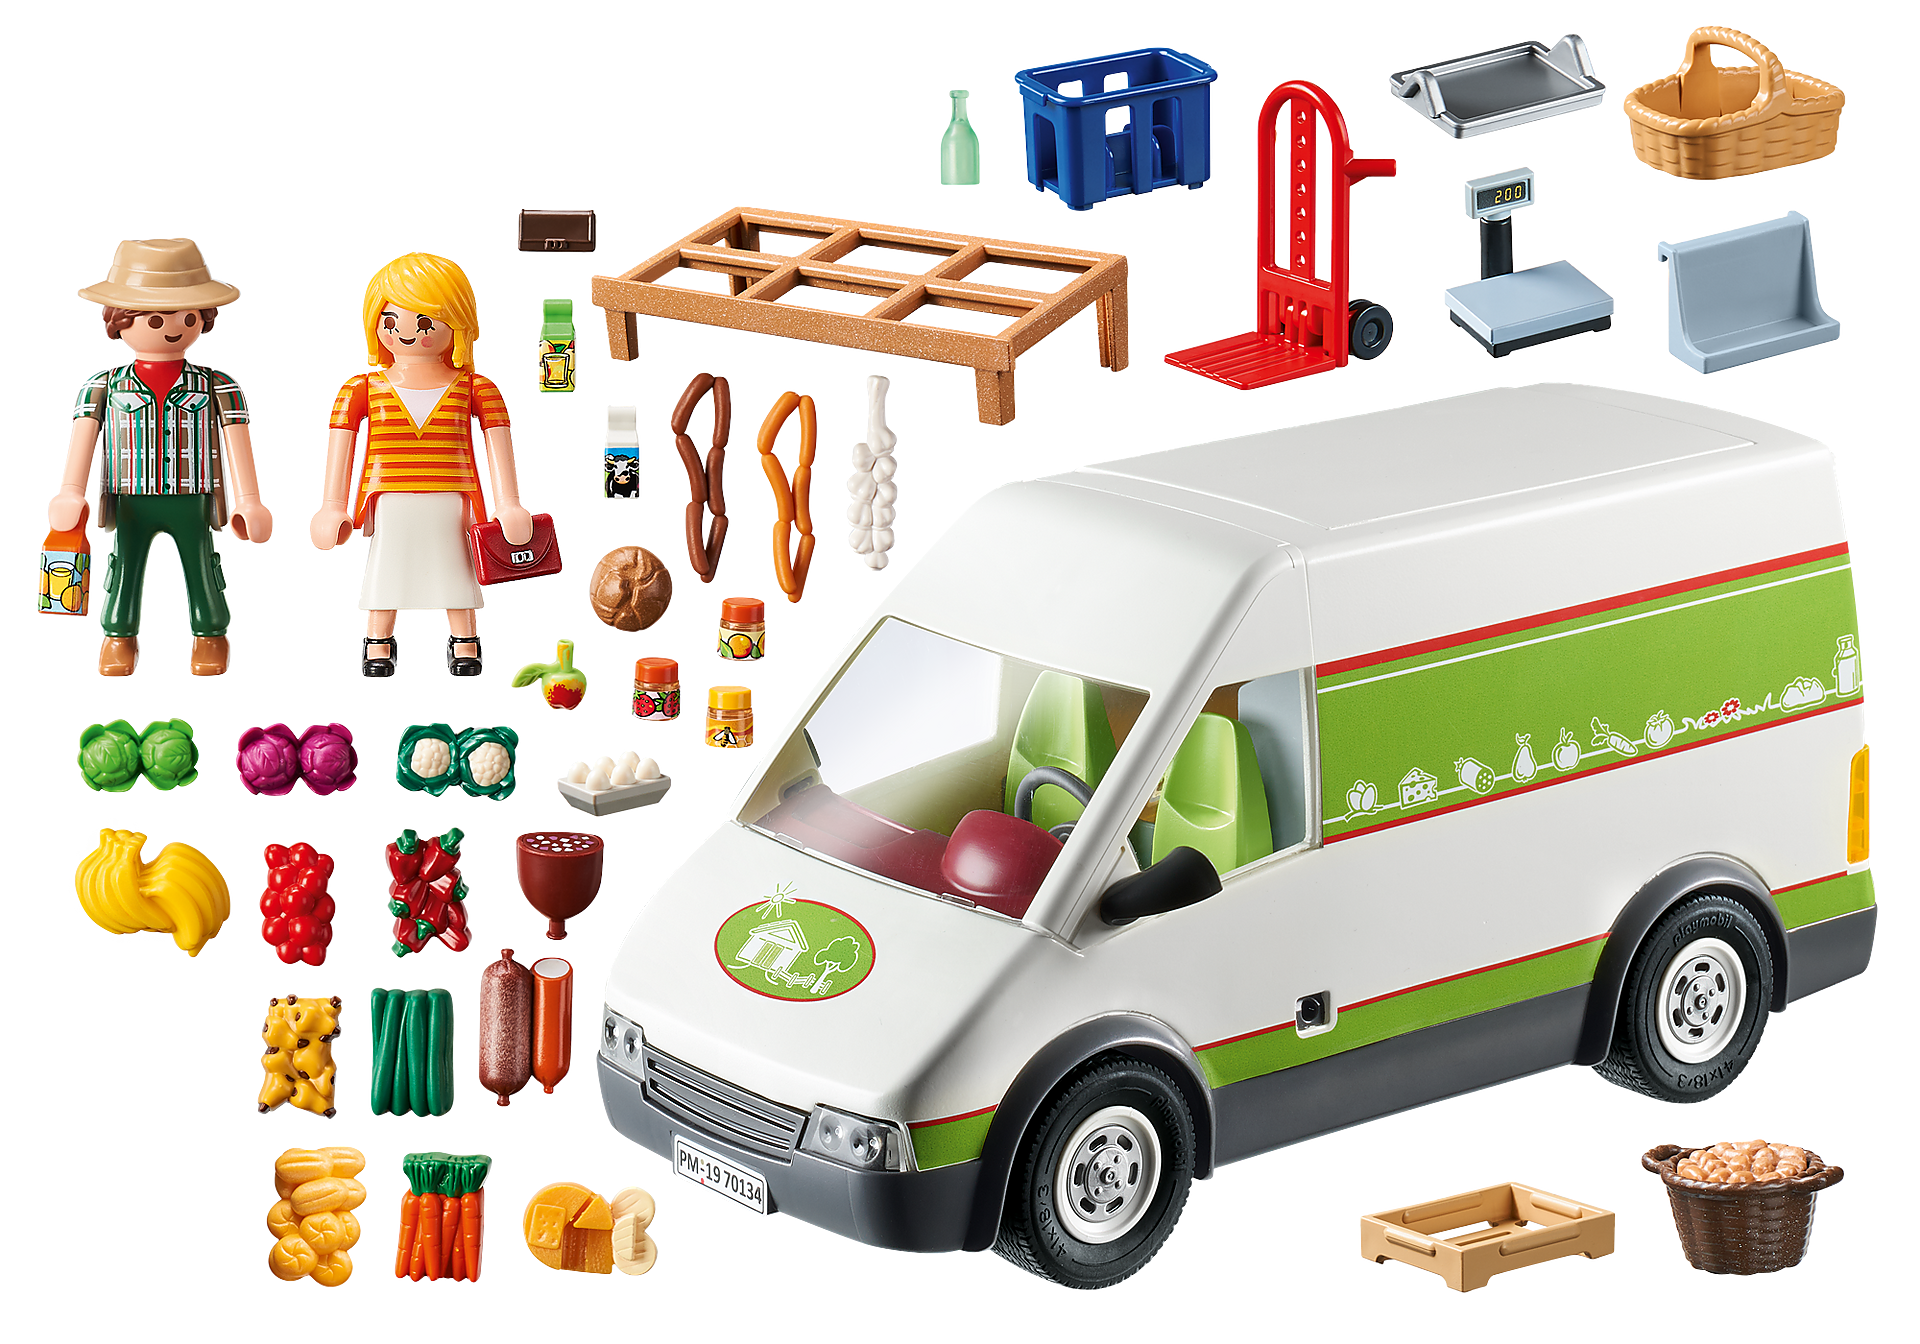 http://media.playmobil.com/i/playmobil/70134_product_box_back/Marktkraamwagen